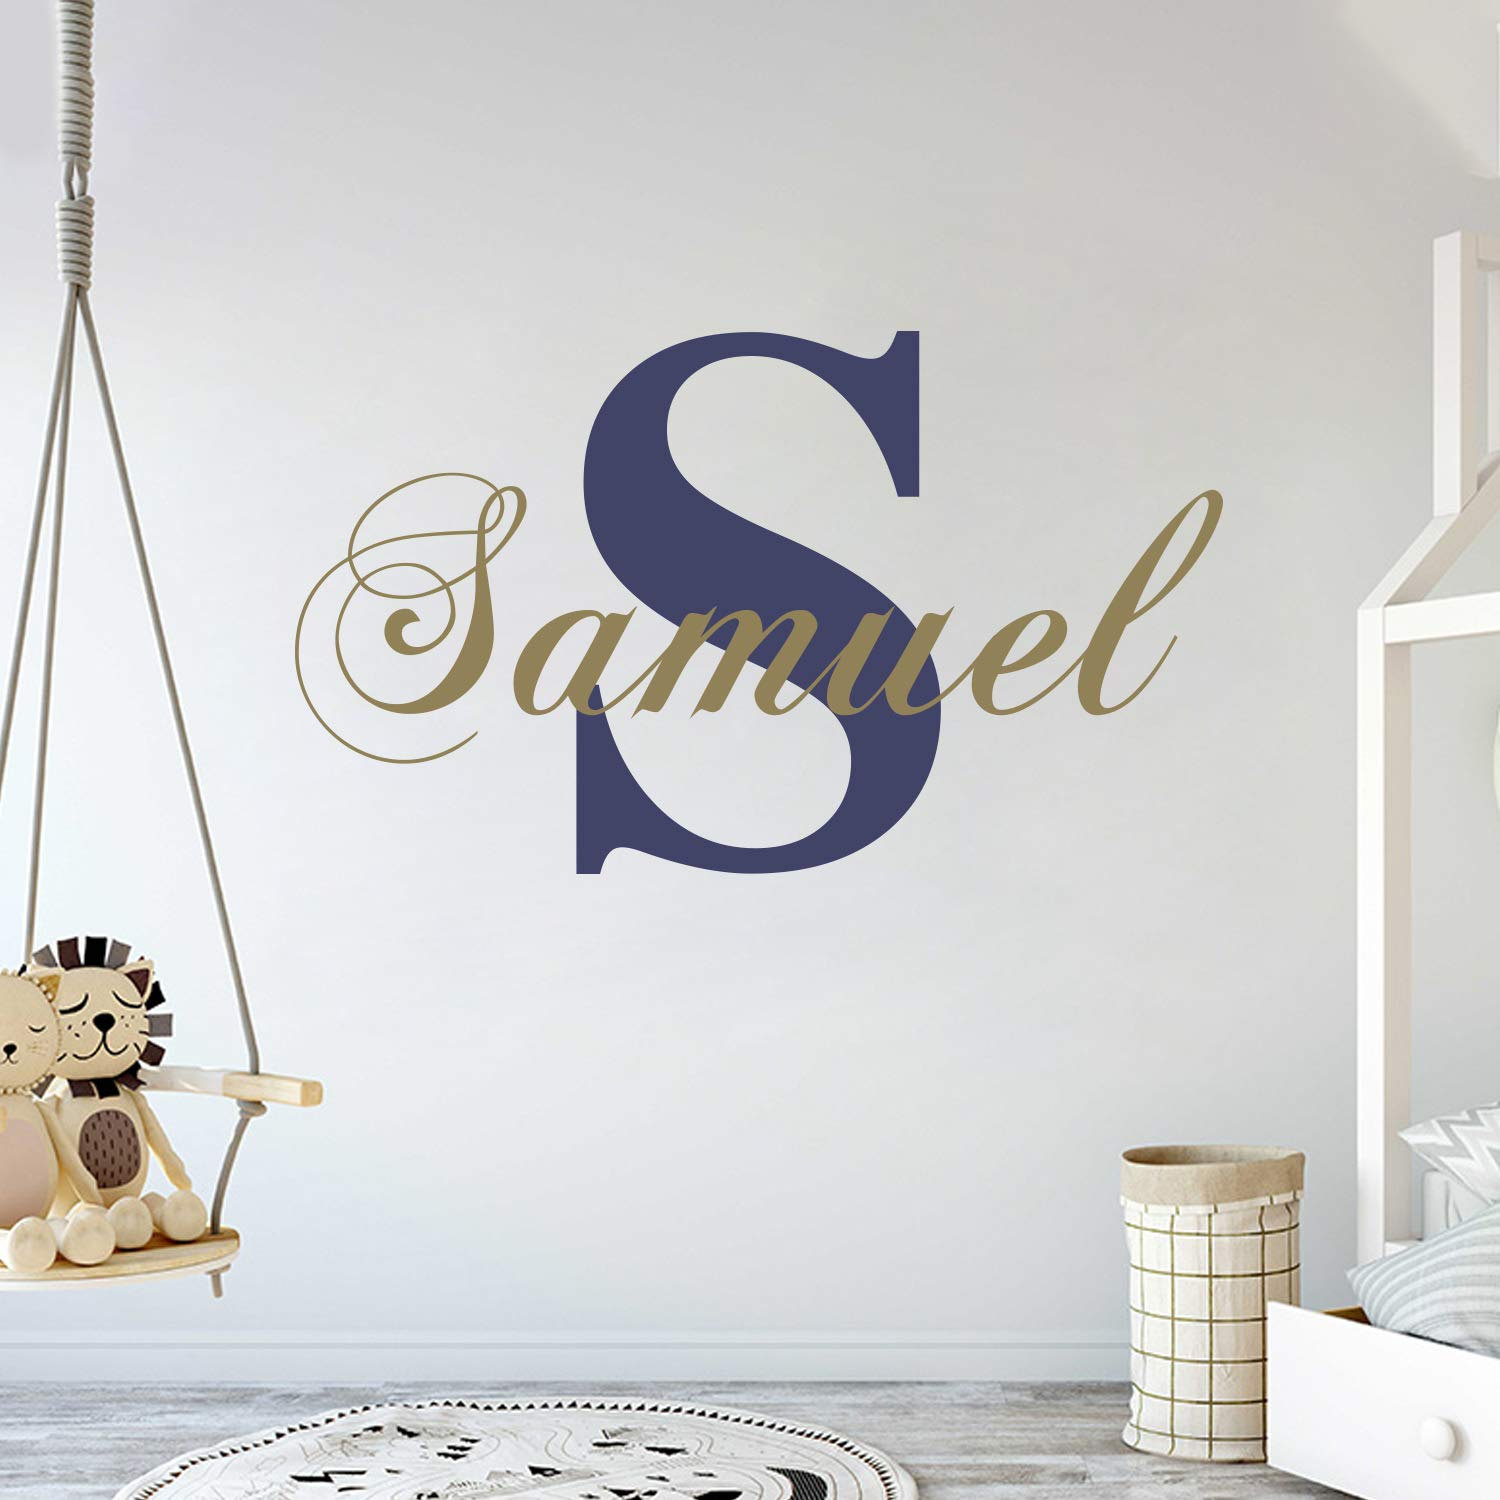 Personalized Name & Initial Classic Edition - Prime Series - Baby Girl - Nursery Wall Decal For Baby Room Decorations - Mural Wall Decal Sticker For Home Children's Bedroom(MM39) (Wide 42''x21'' Height)